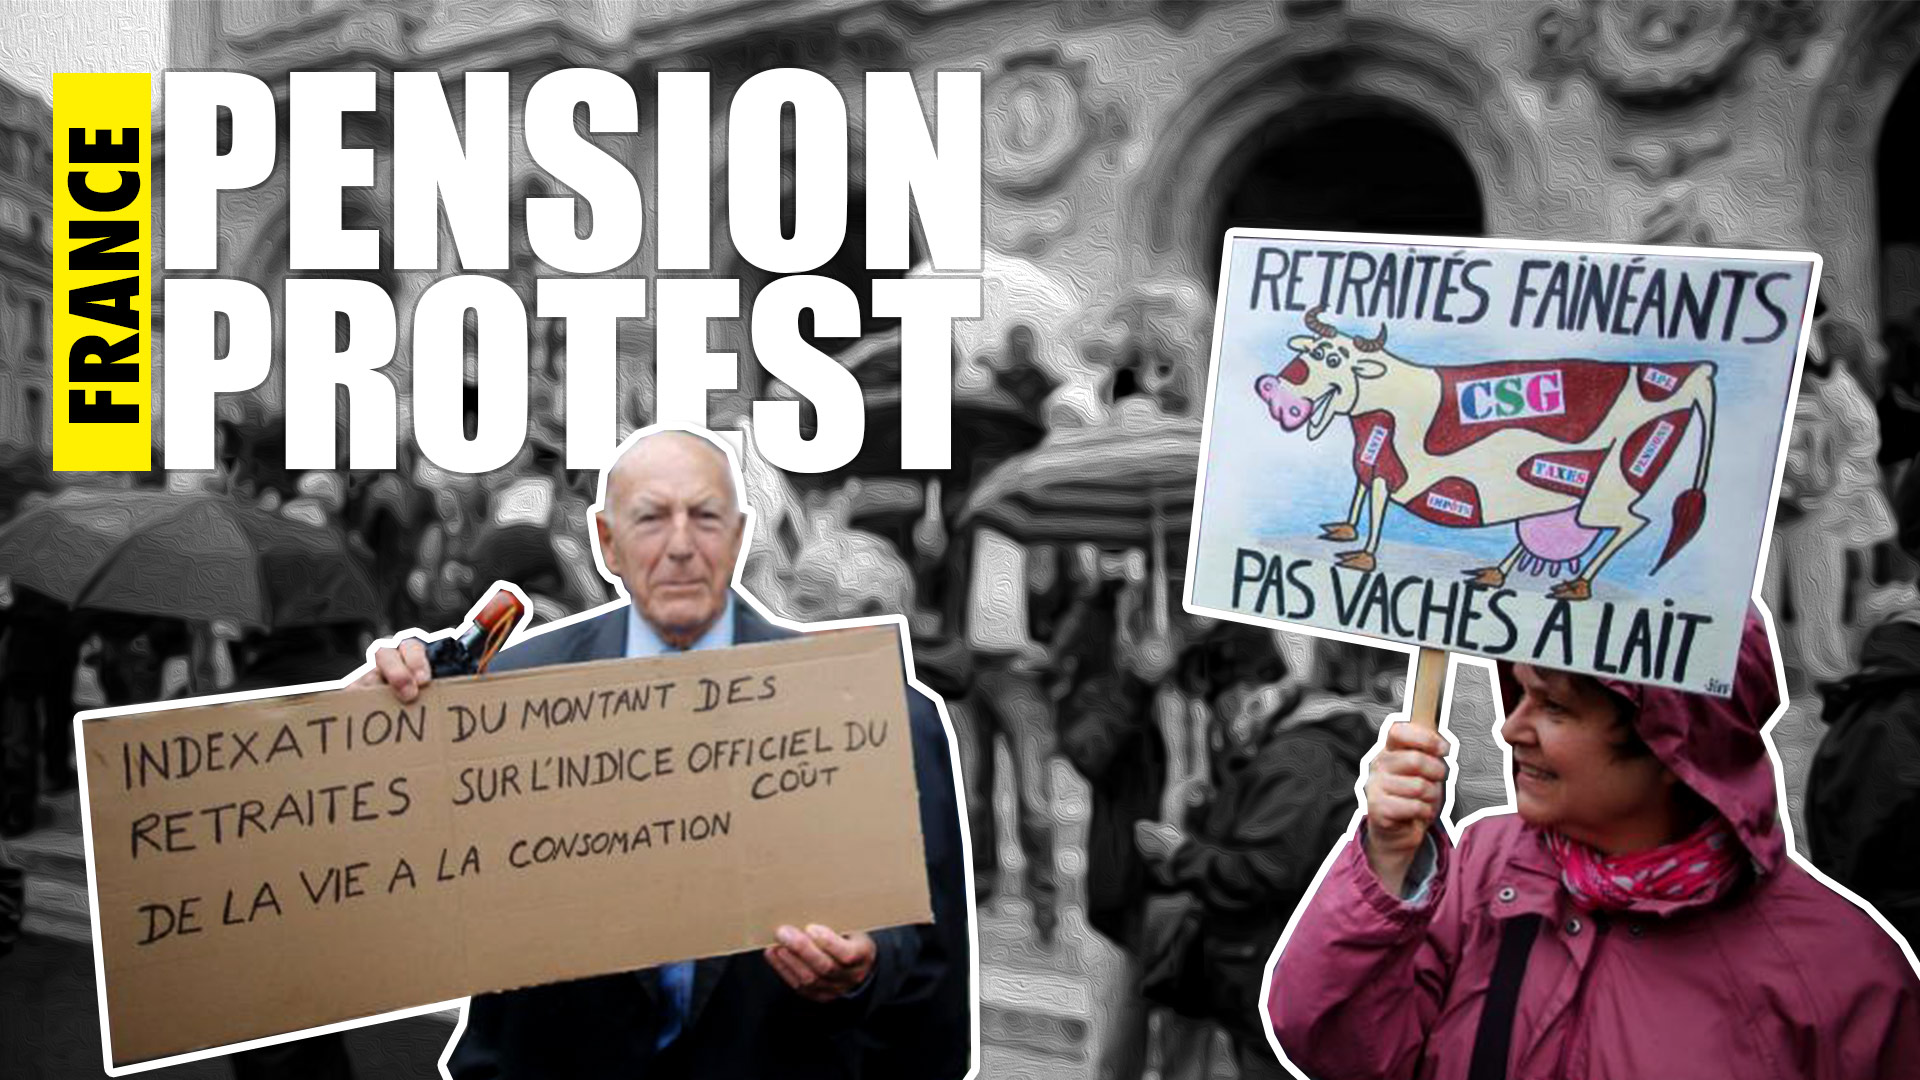 Pension protests in France